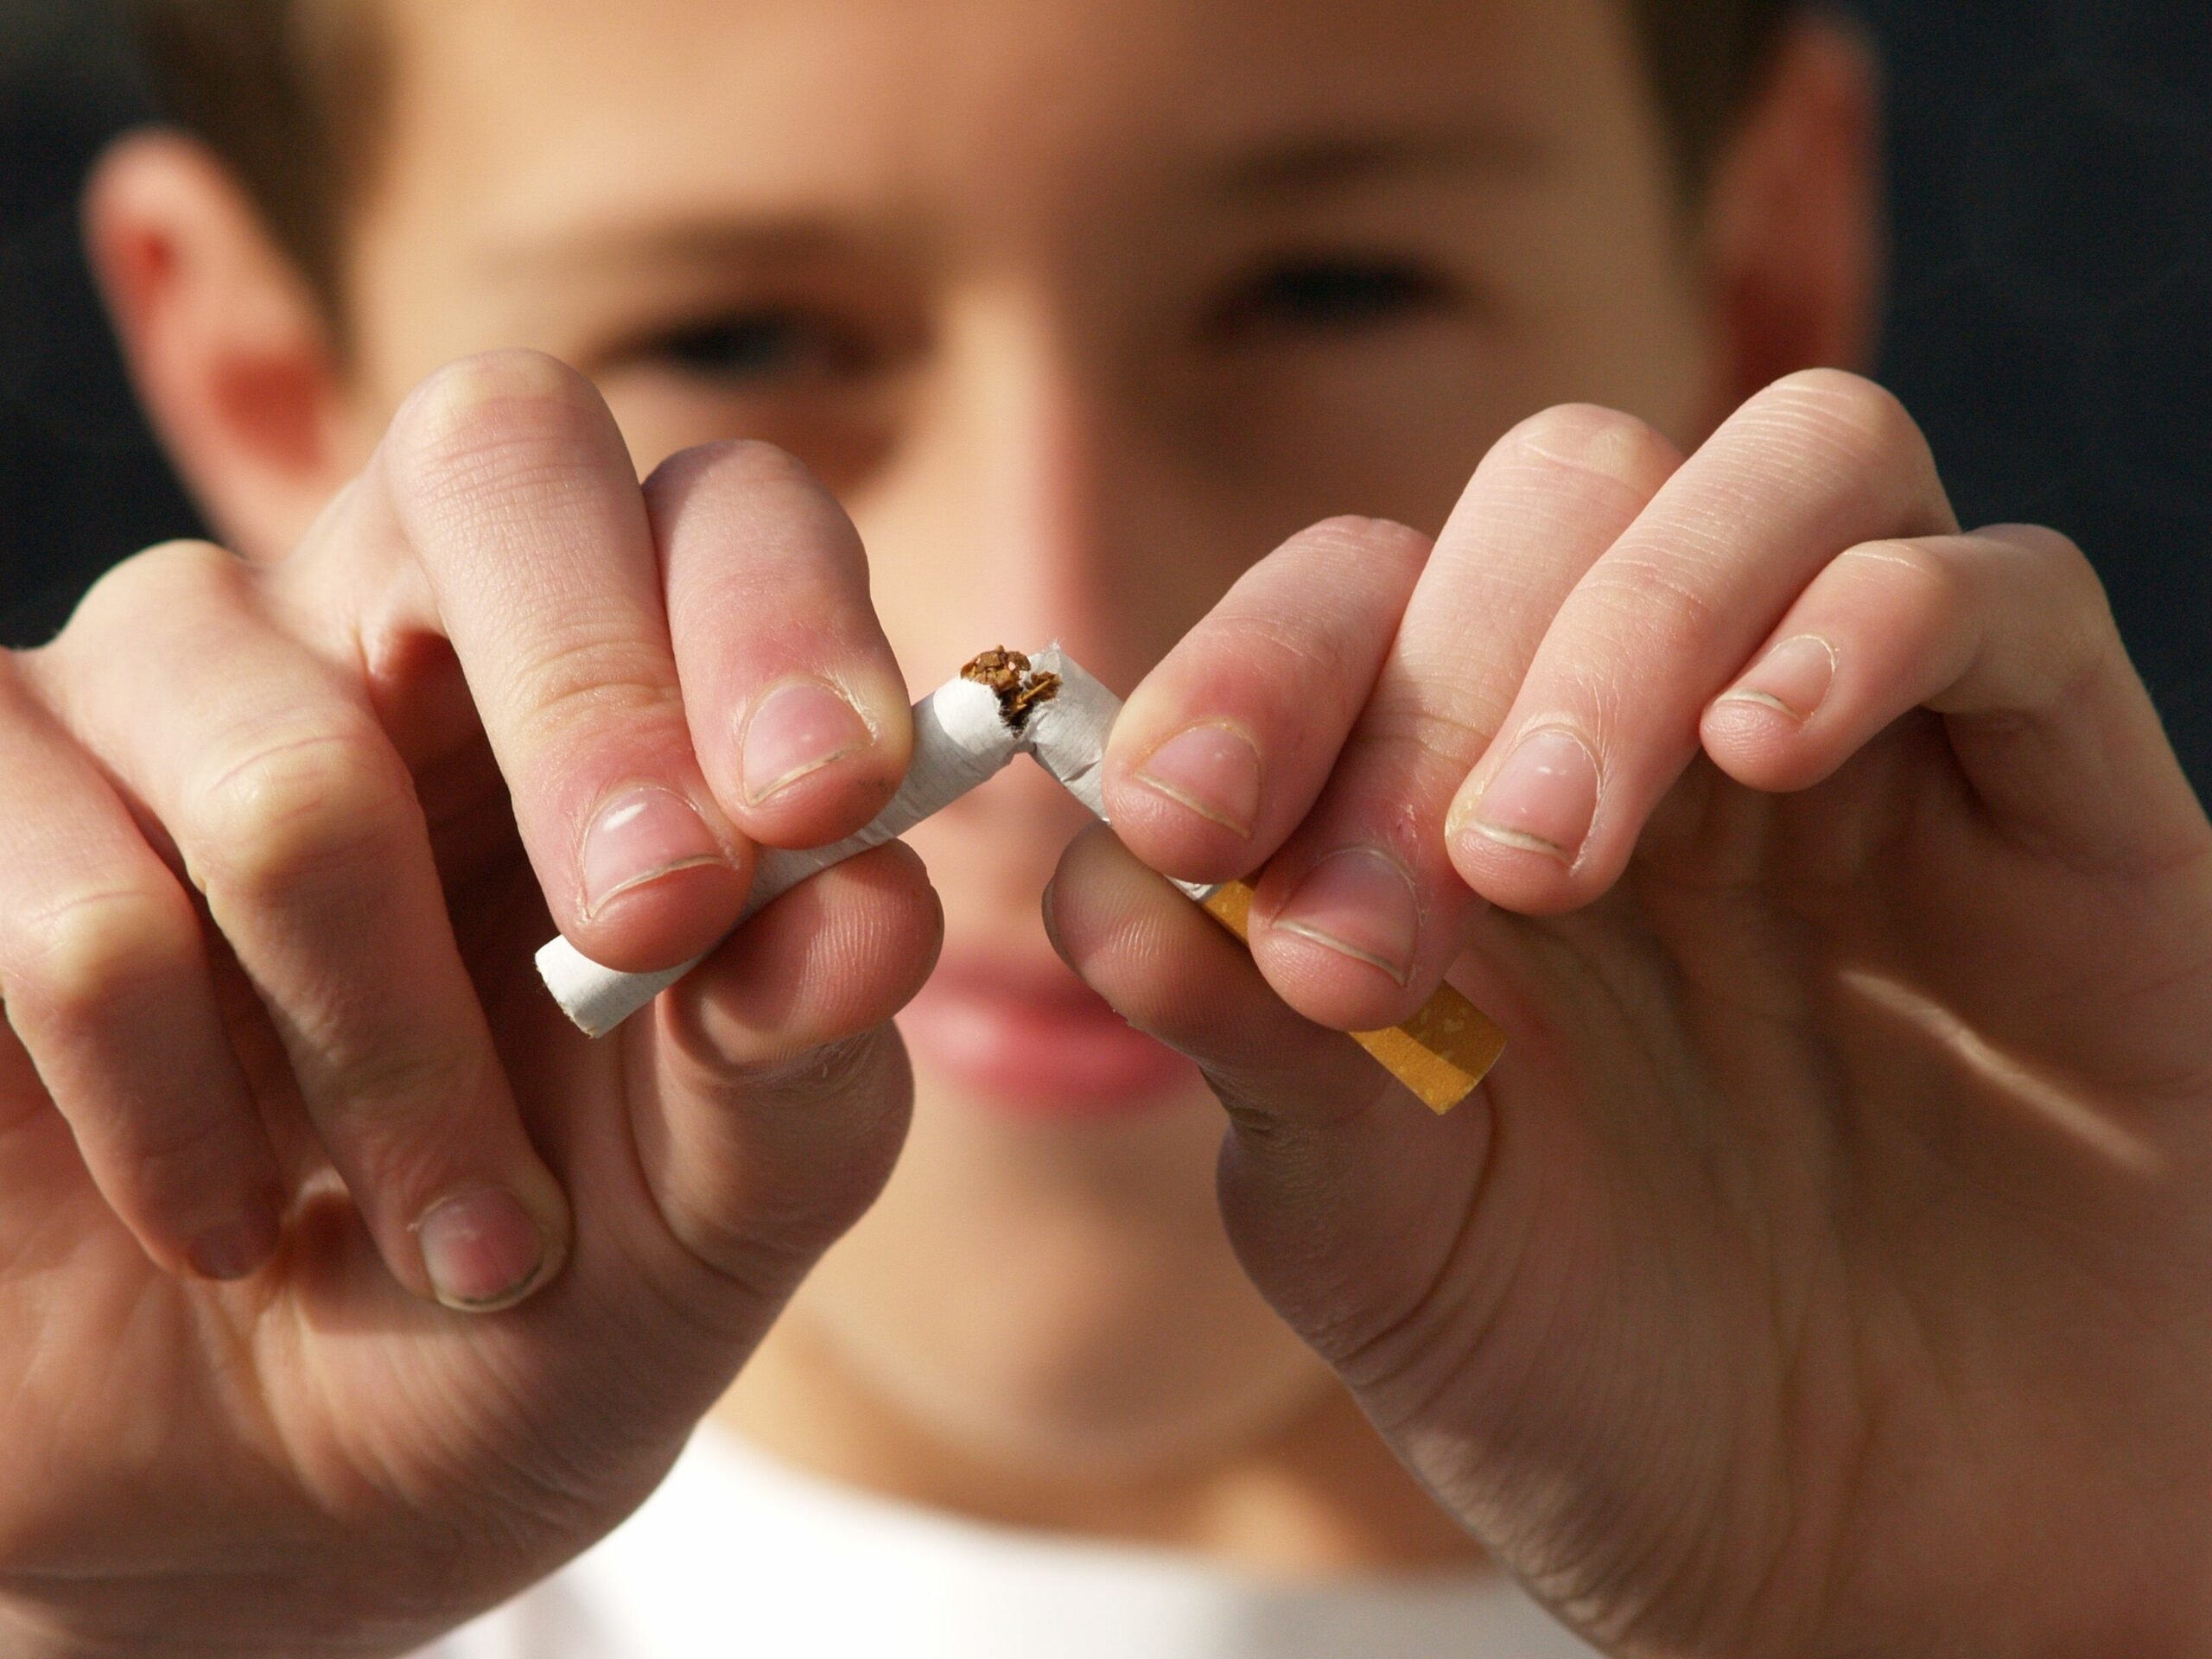 Hoffman Estates IL Dentist | Tobacco & Your Teeth: The Risks of Chewing and Smoking